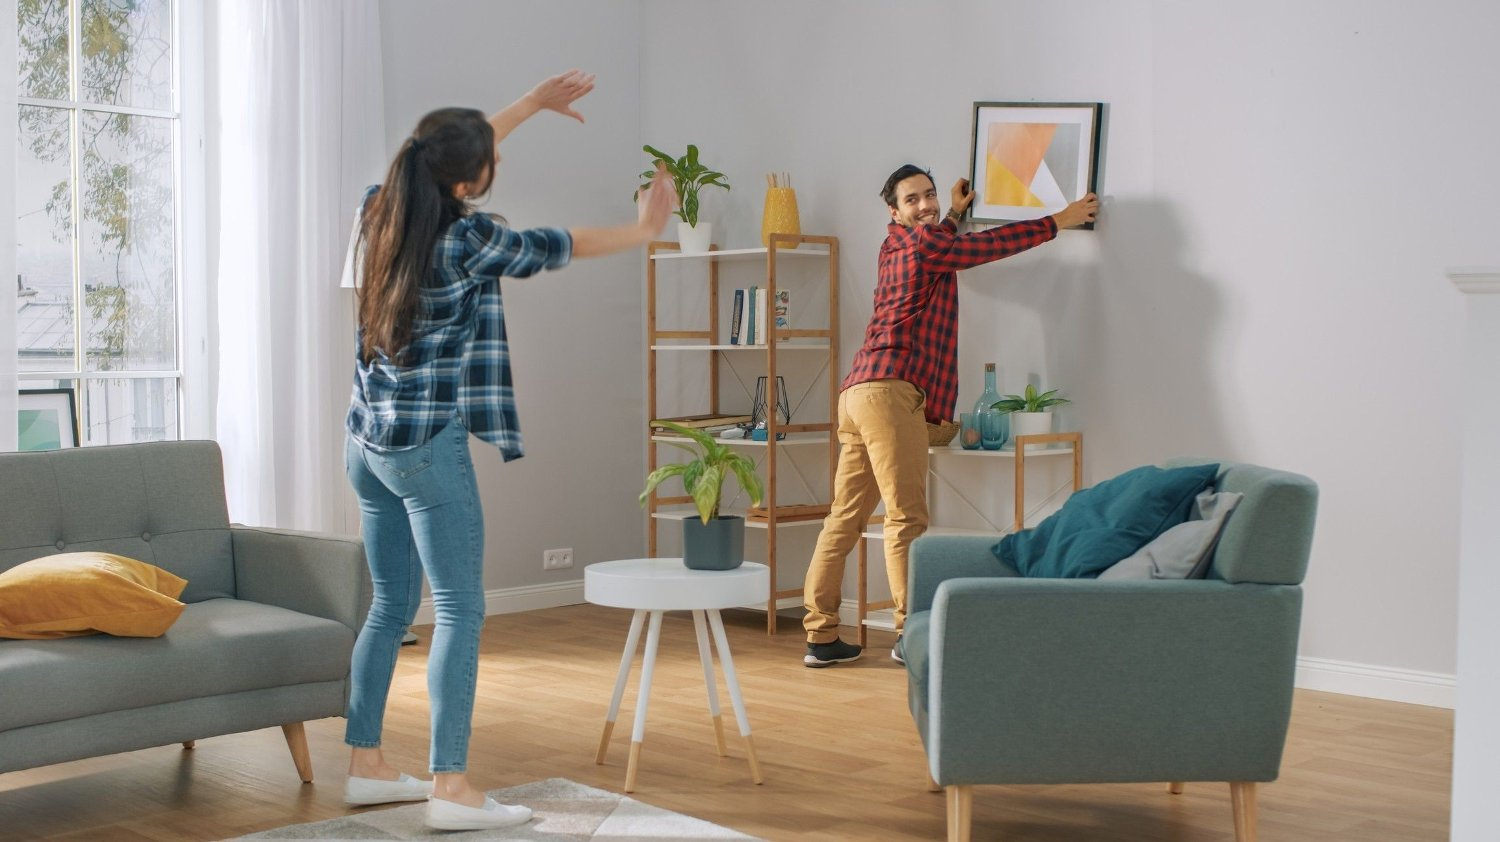 Happy Couple Hanging Picture on the Wall, Boyfriend Moves It, Girlfriend Tells Him when the Frame is Hanging Straight. Funny Moment in Young Couple's Life. Modern Stylish Apartment. Happy Couple Hanging Picture on the Wall, Boyfriend Moves It, Girlfriend Tells Him when the Frame is Hanging Straight. Funny Moment in Young Couple's Life. Modern Stylish Apartment.